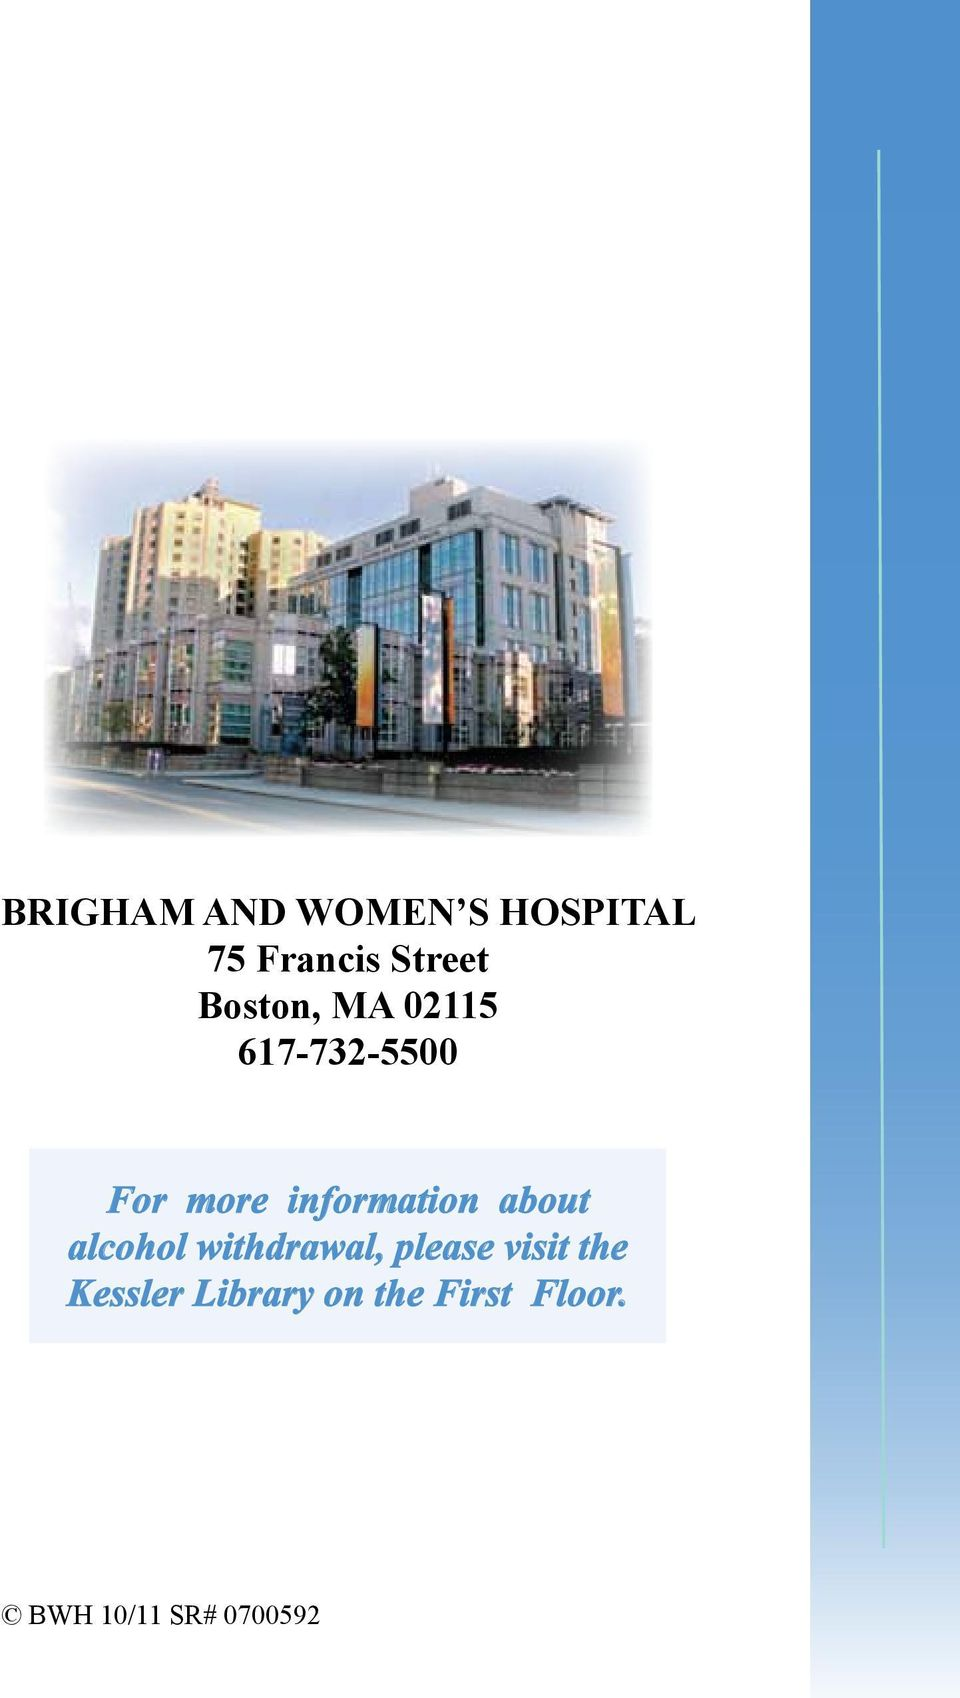 information about alcohol withdrawal, please